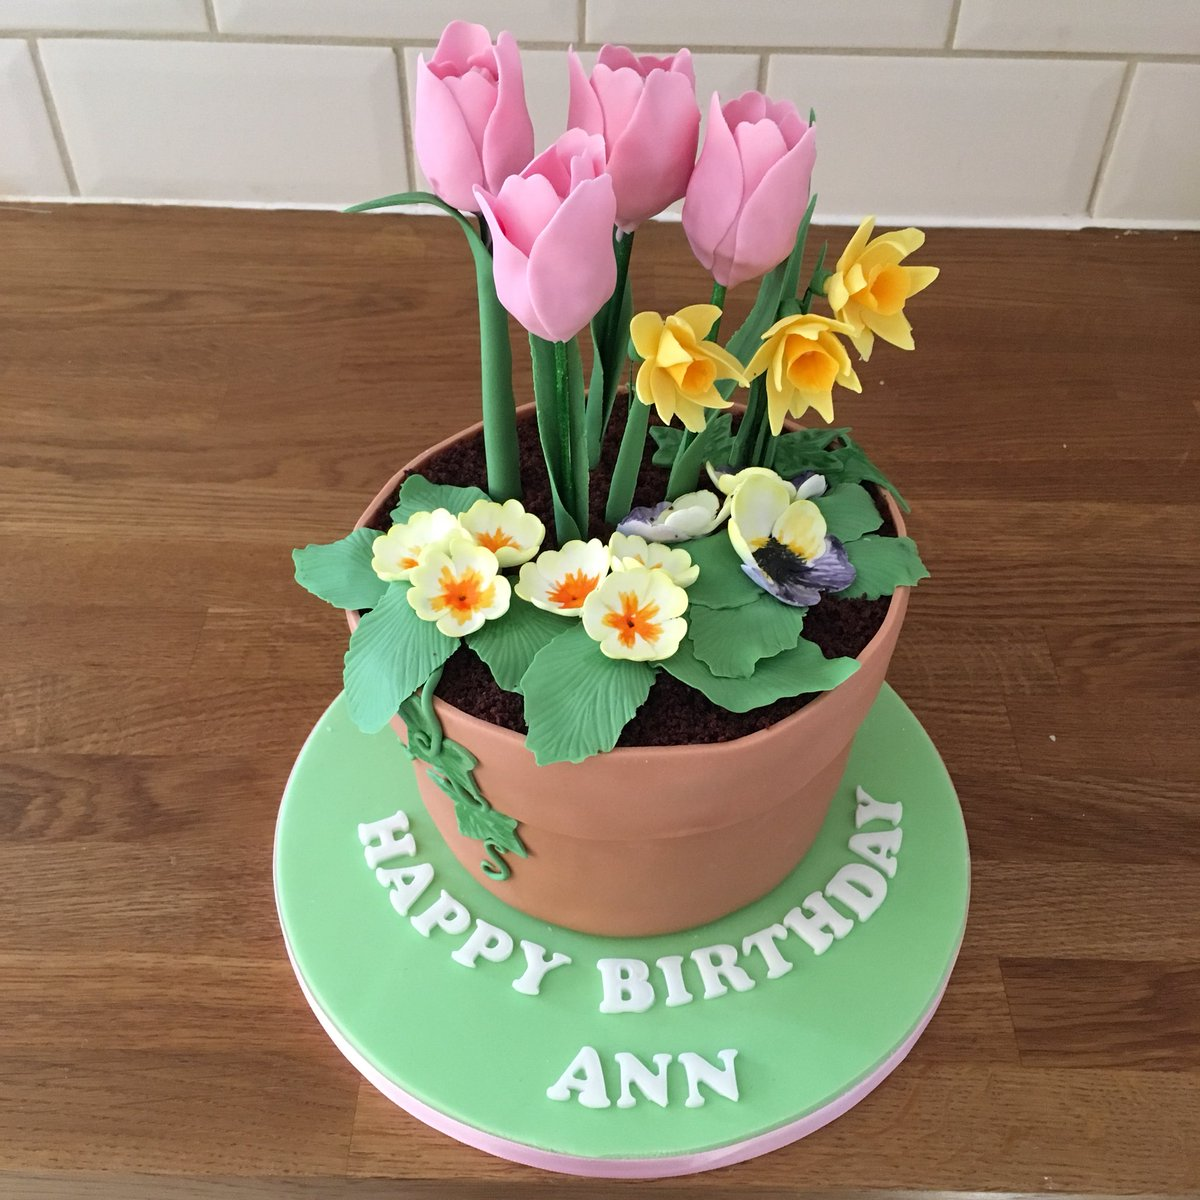 Jades Cakes On Twitter Flower Pot Cake With Cake Pop Tulips Hello